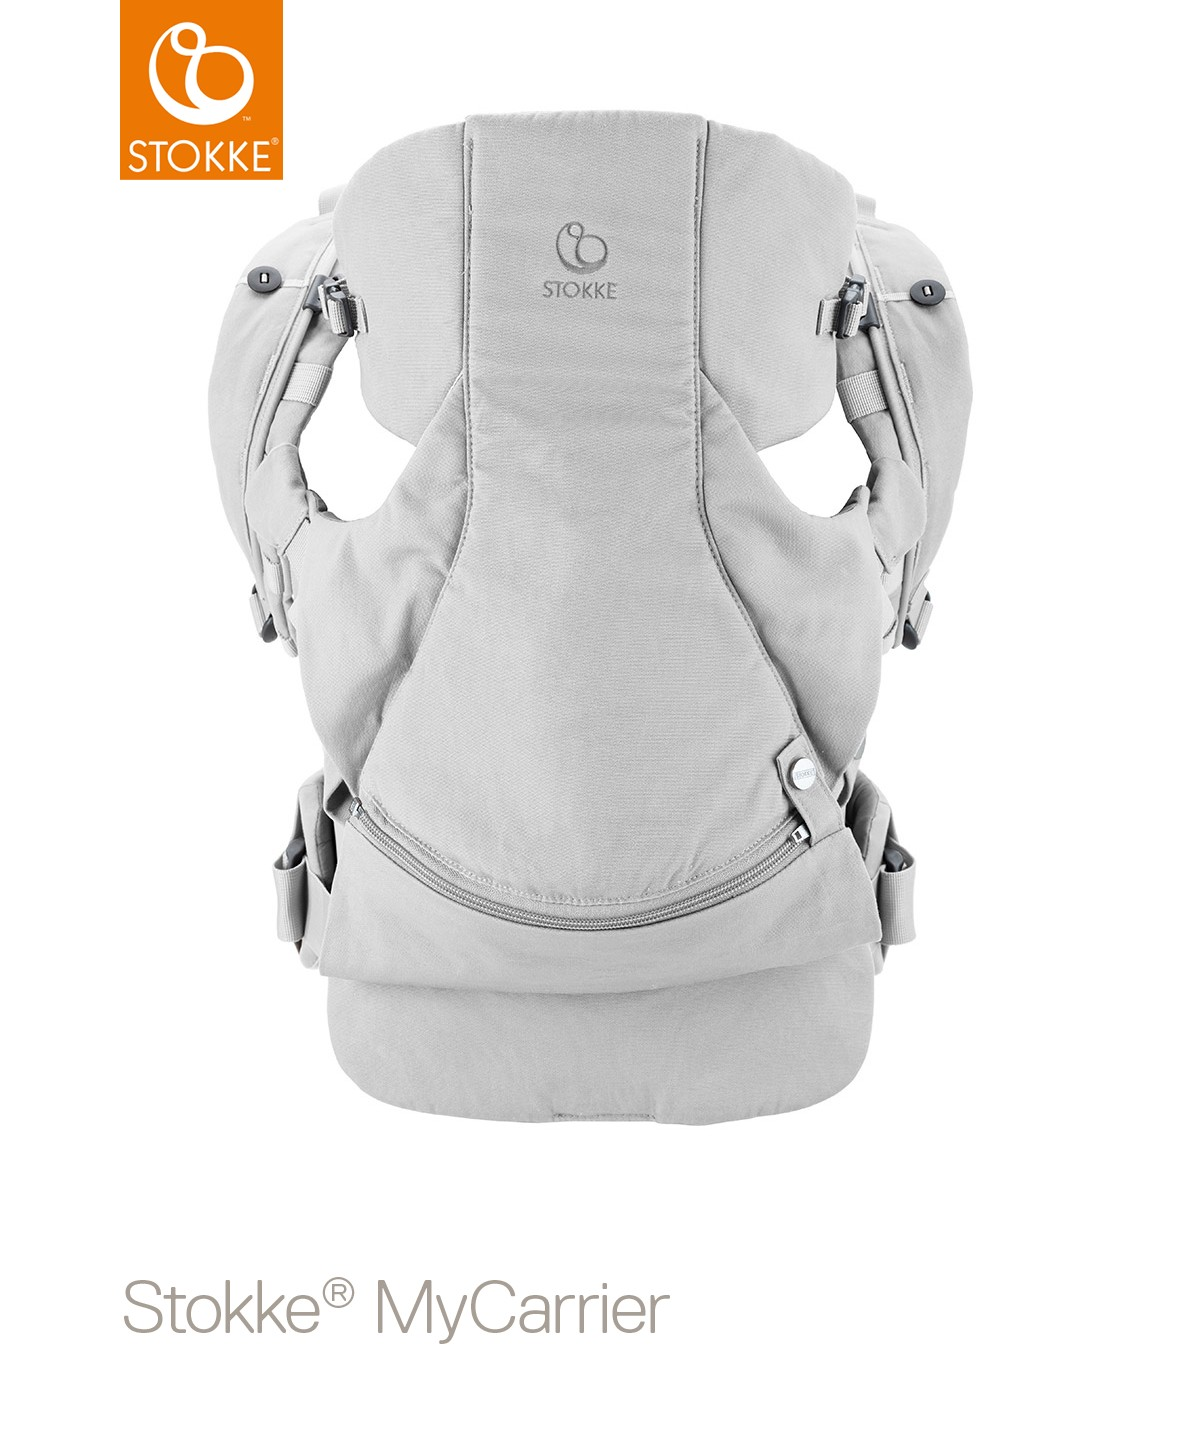 Рюкзак-переноска 3-в-1 Stokke MyCarrier Grey, цвет: серый